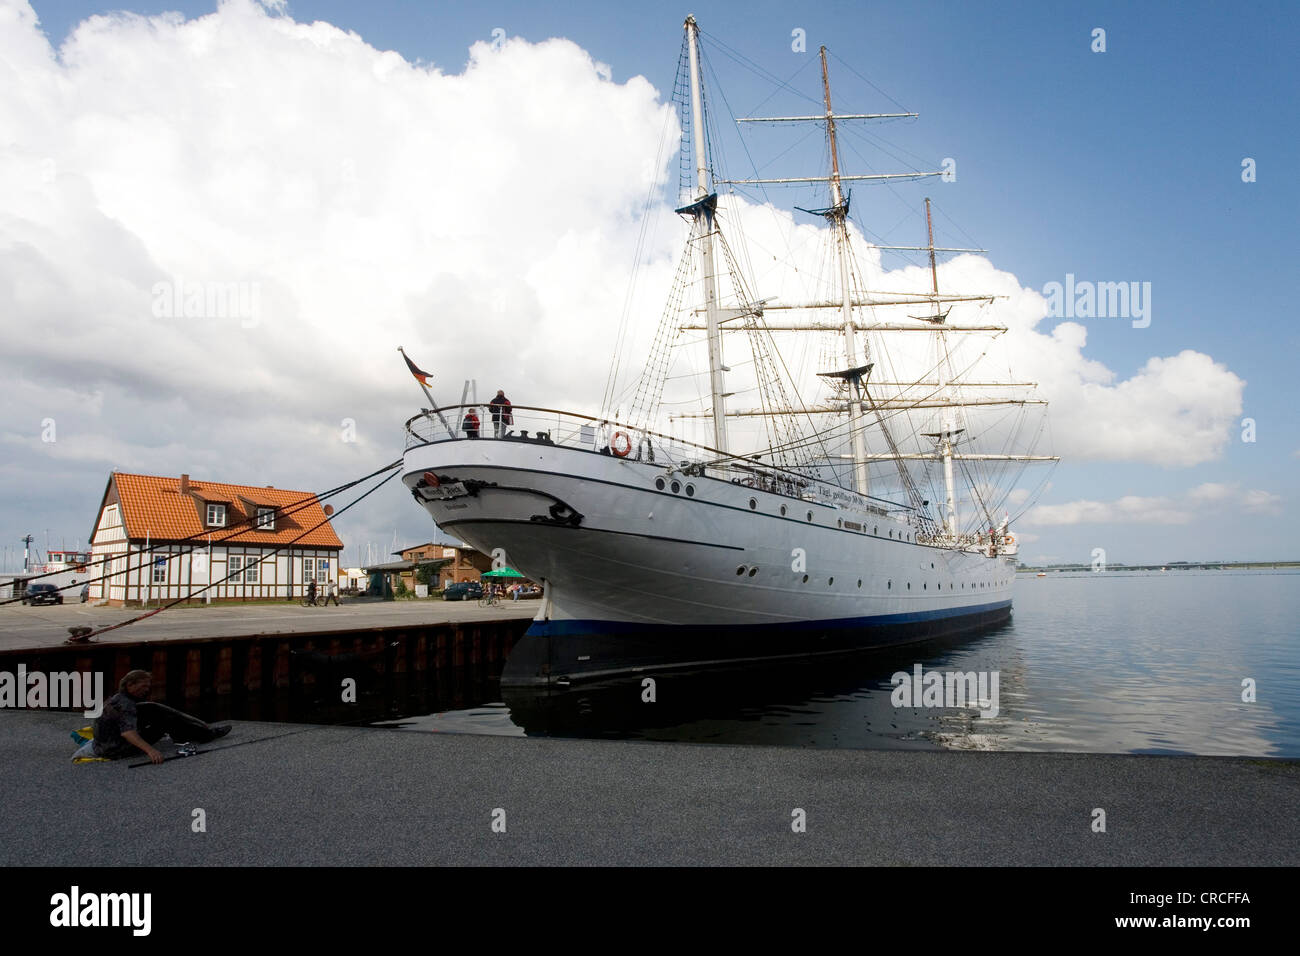 Tall ship Gorch Fock moored in the harbour, Hanseatic city of Stralsund, Mecklenburg-Western Pomerania, Baltic Sea Stock Photo